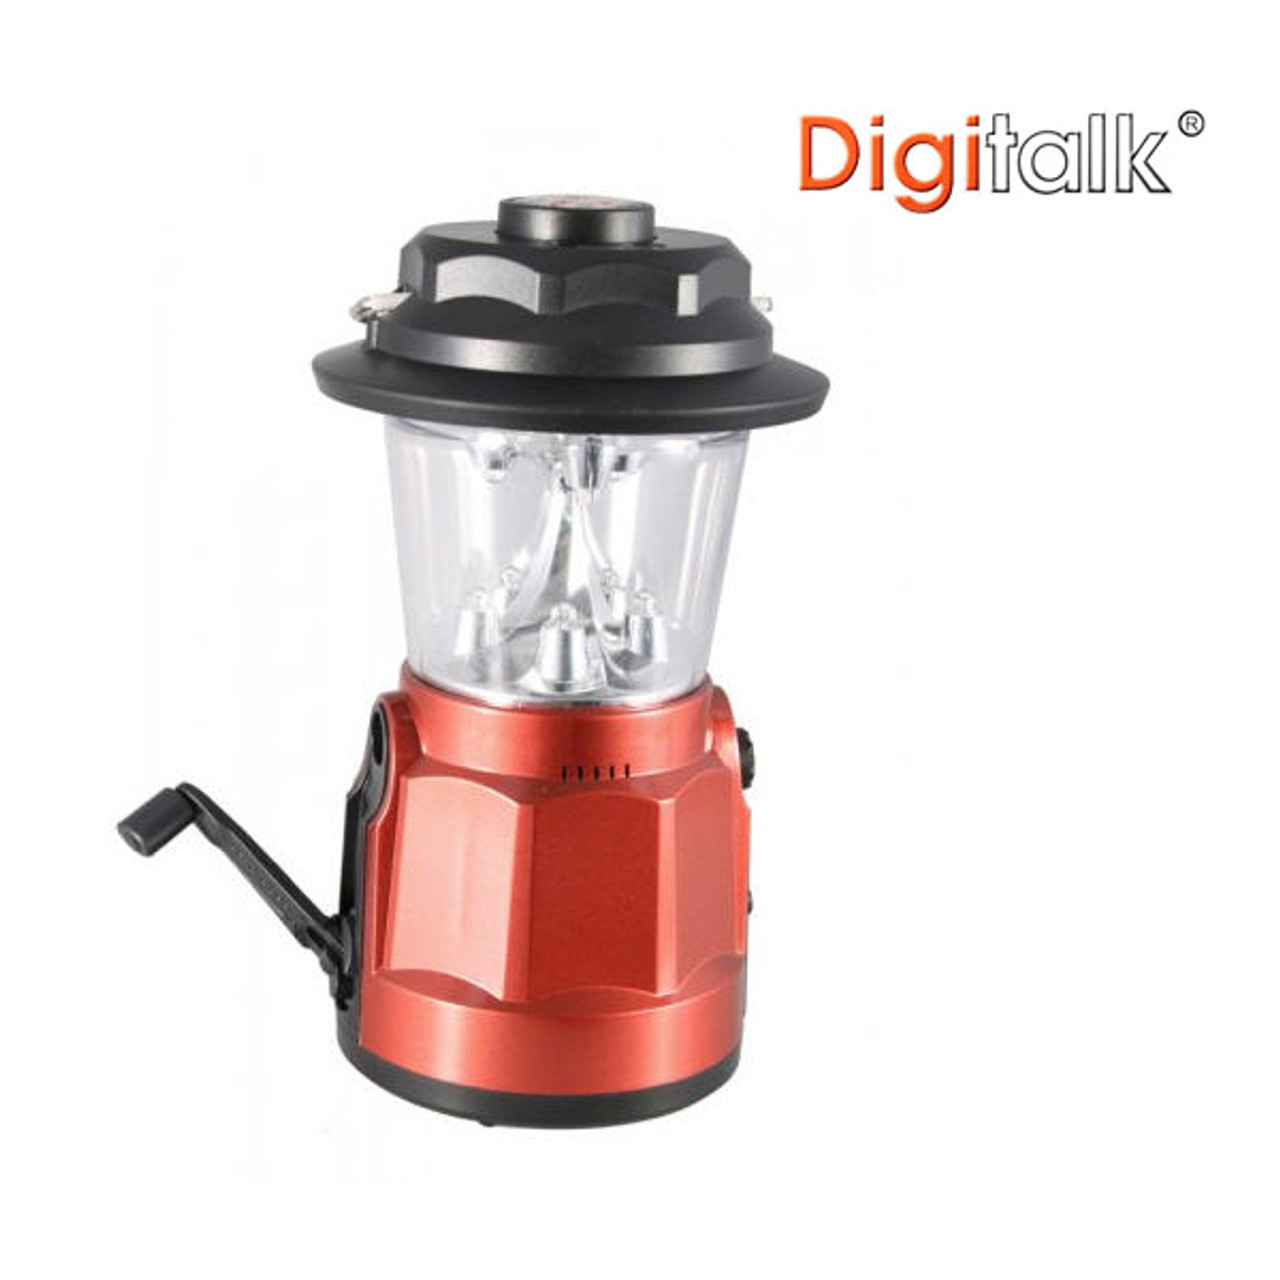 Product image for Portable Dynamo LED Lantern Radio with Built-In Compass | CX Computer Superstore